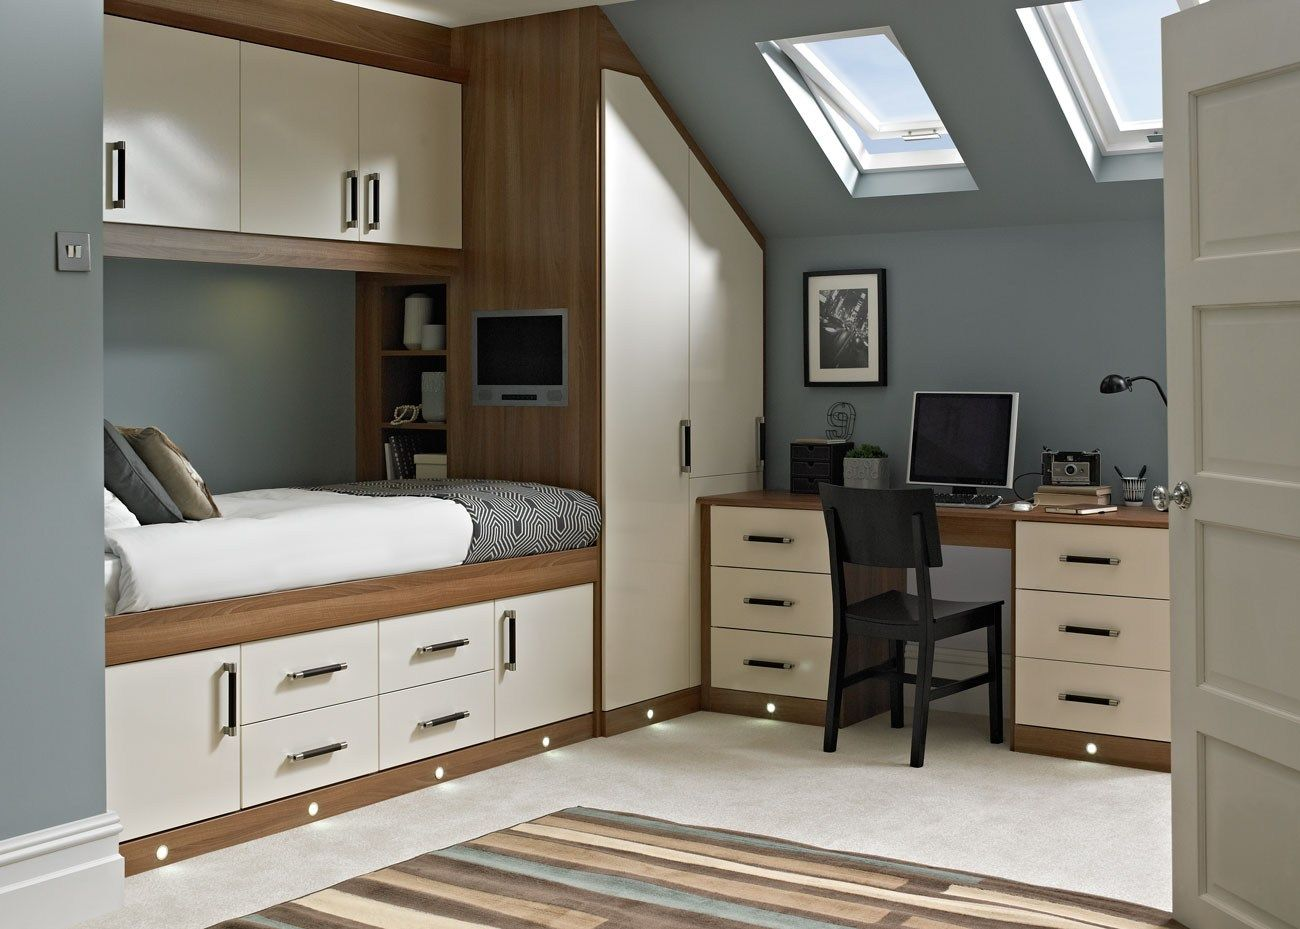 Best Espirit Cream Bedroom Fitted Bedrooms From Betta Living 640 x 480